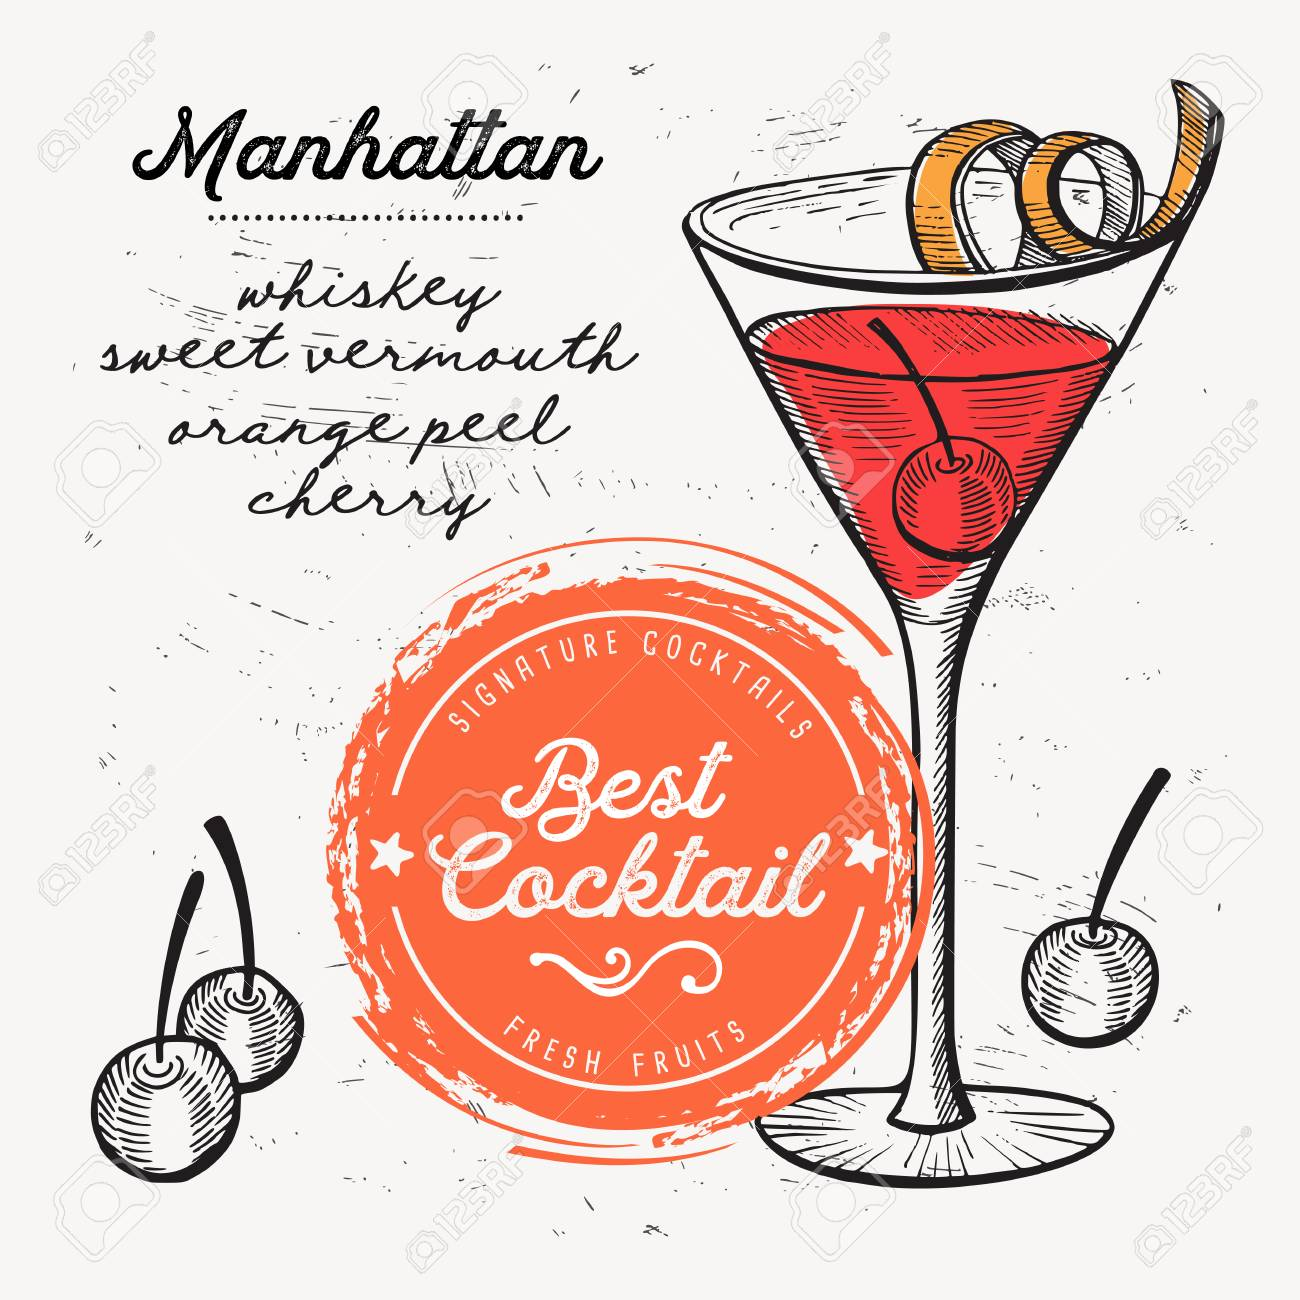 Cocktail Manhattan For Bar Menu Vector Drink Flyer For Restaurant Royalty Free Cliparts Vectors And Stock Illustration Image 98613680